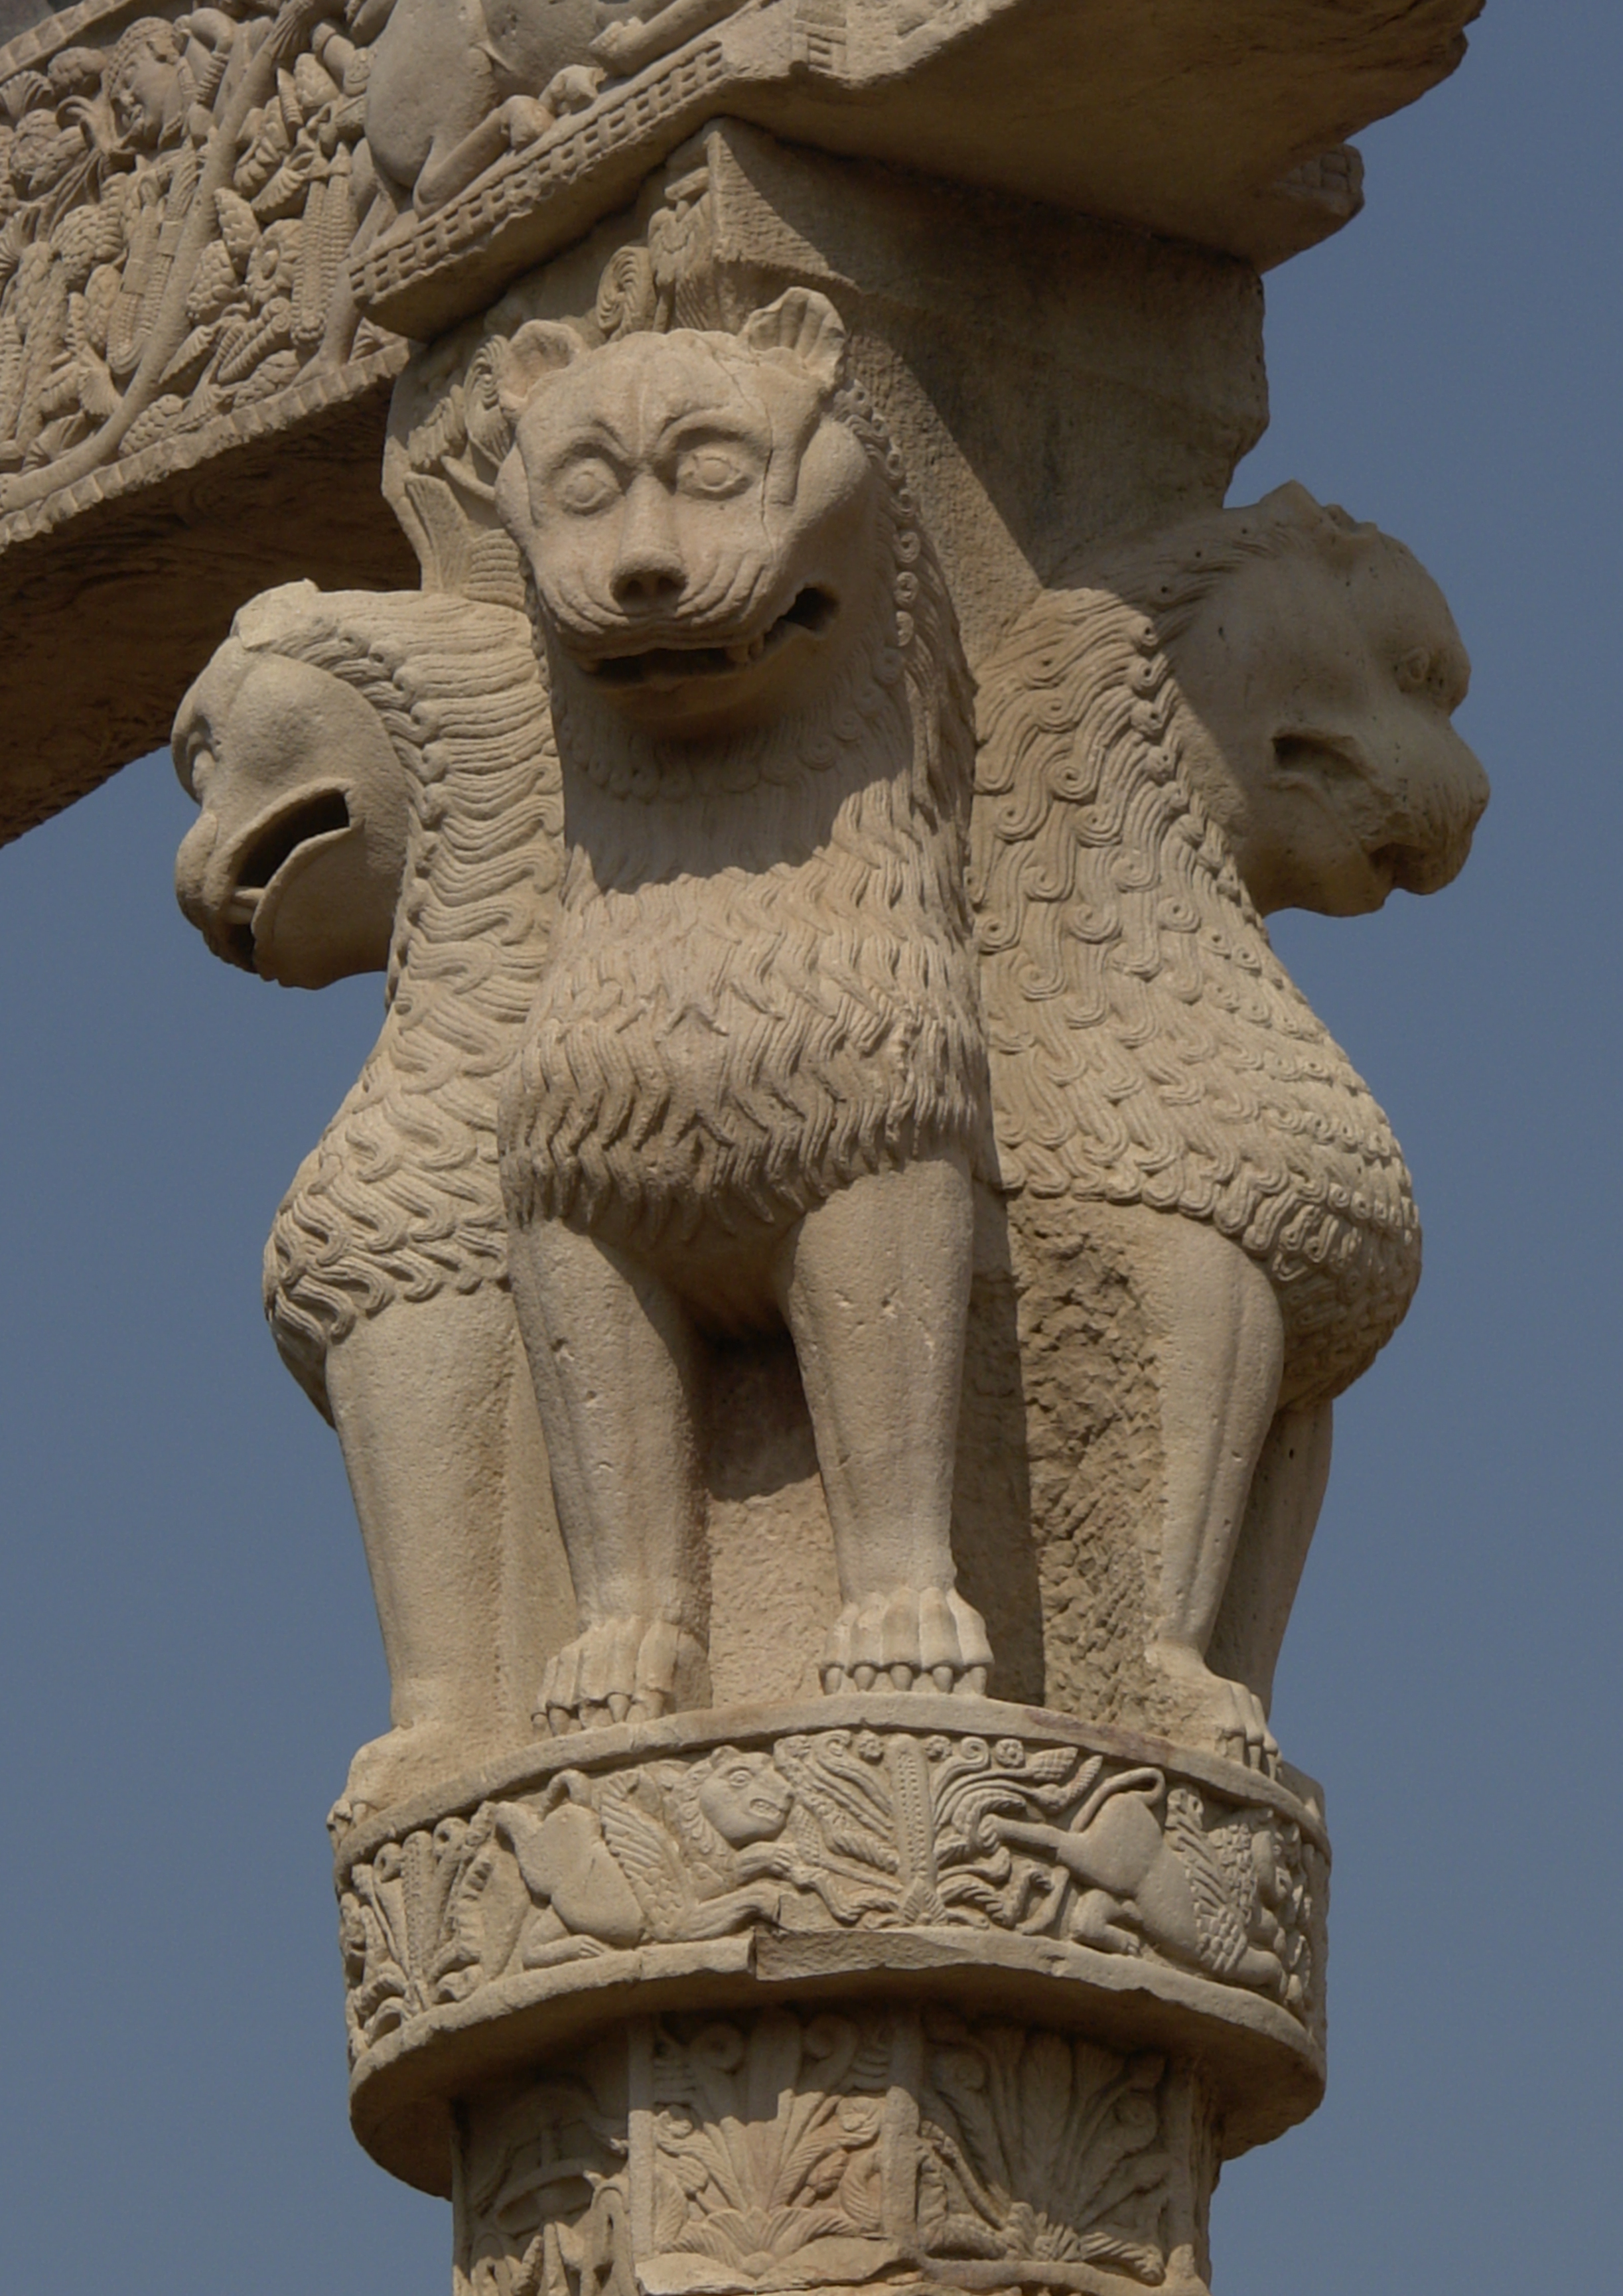 Contact Capital One >> File:Lion Capital of Ashoka 2.jpg - Wikimedia Commons